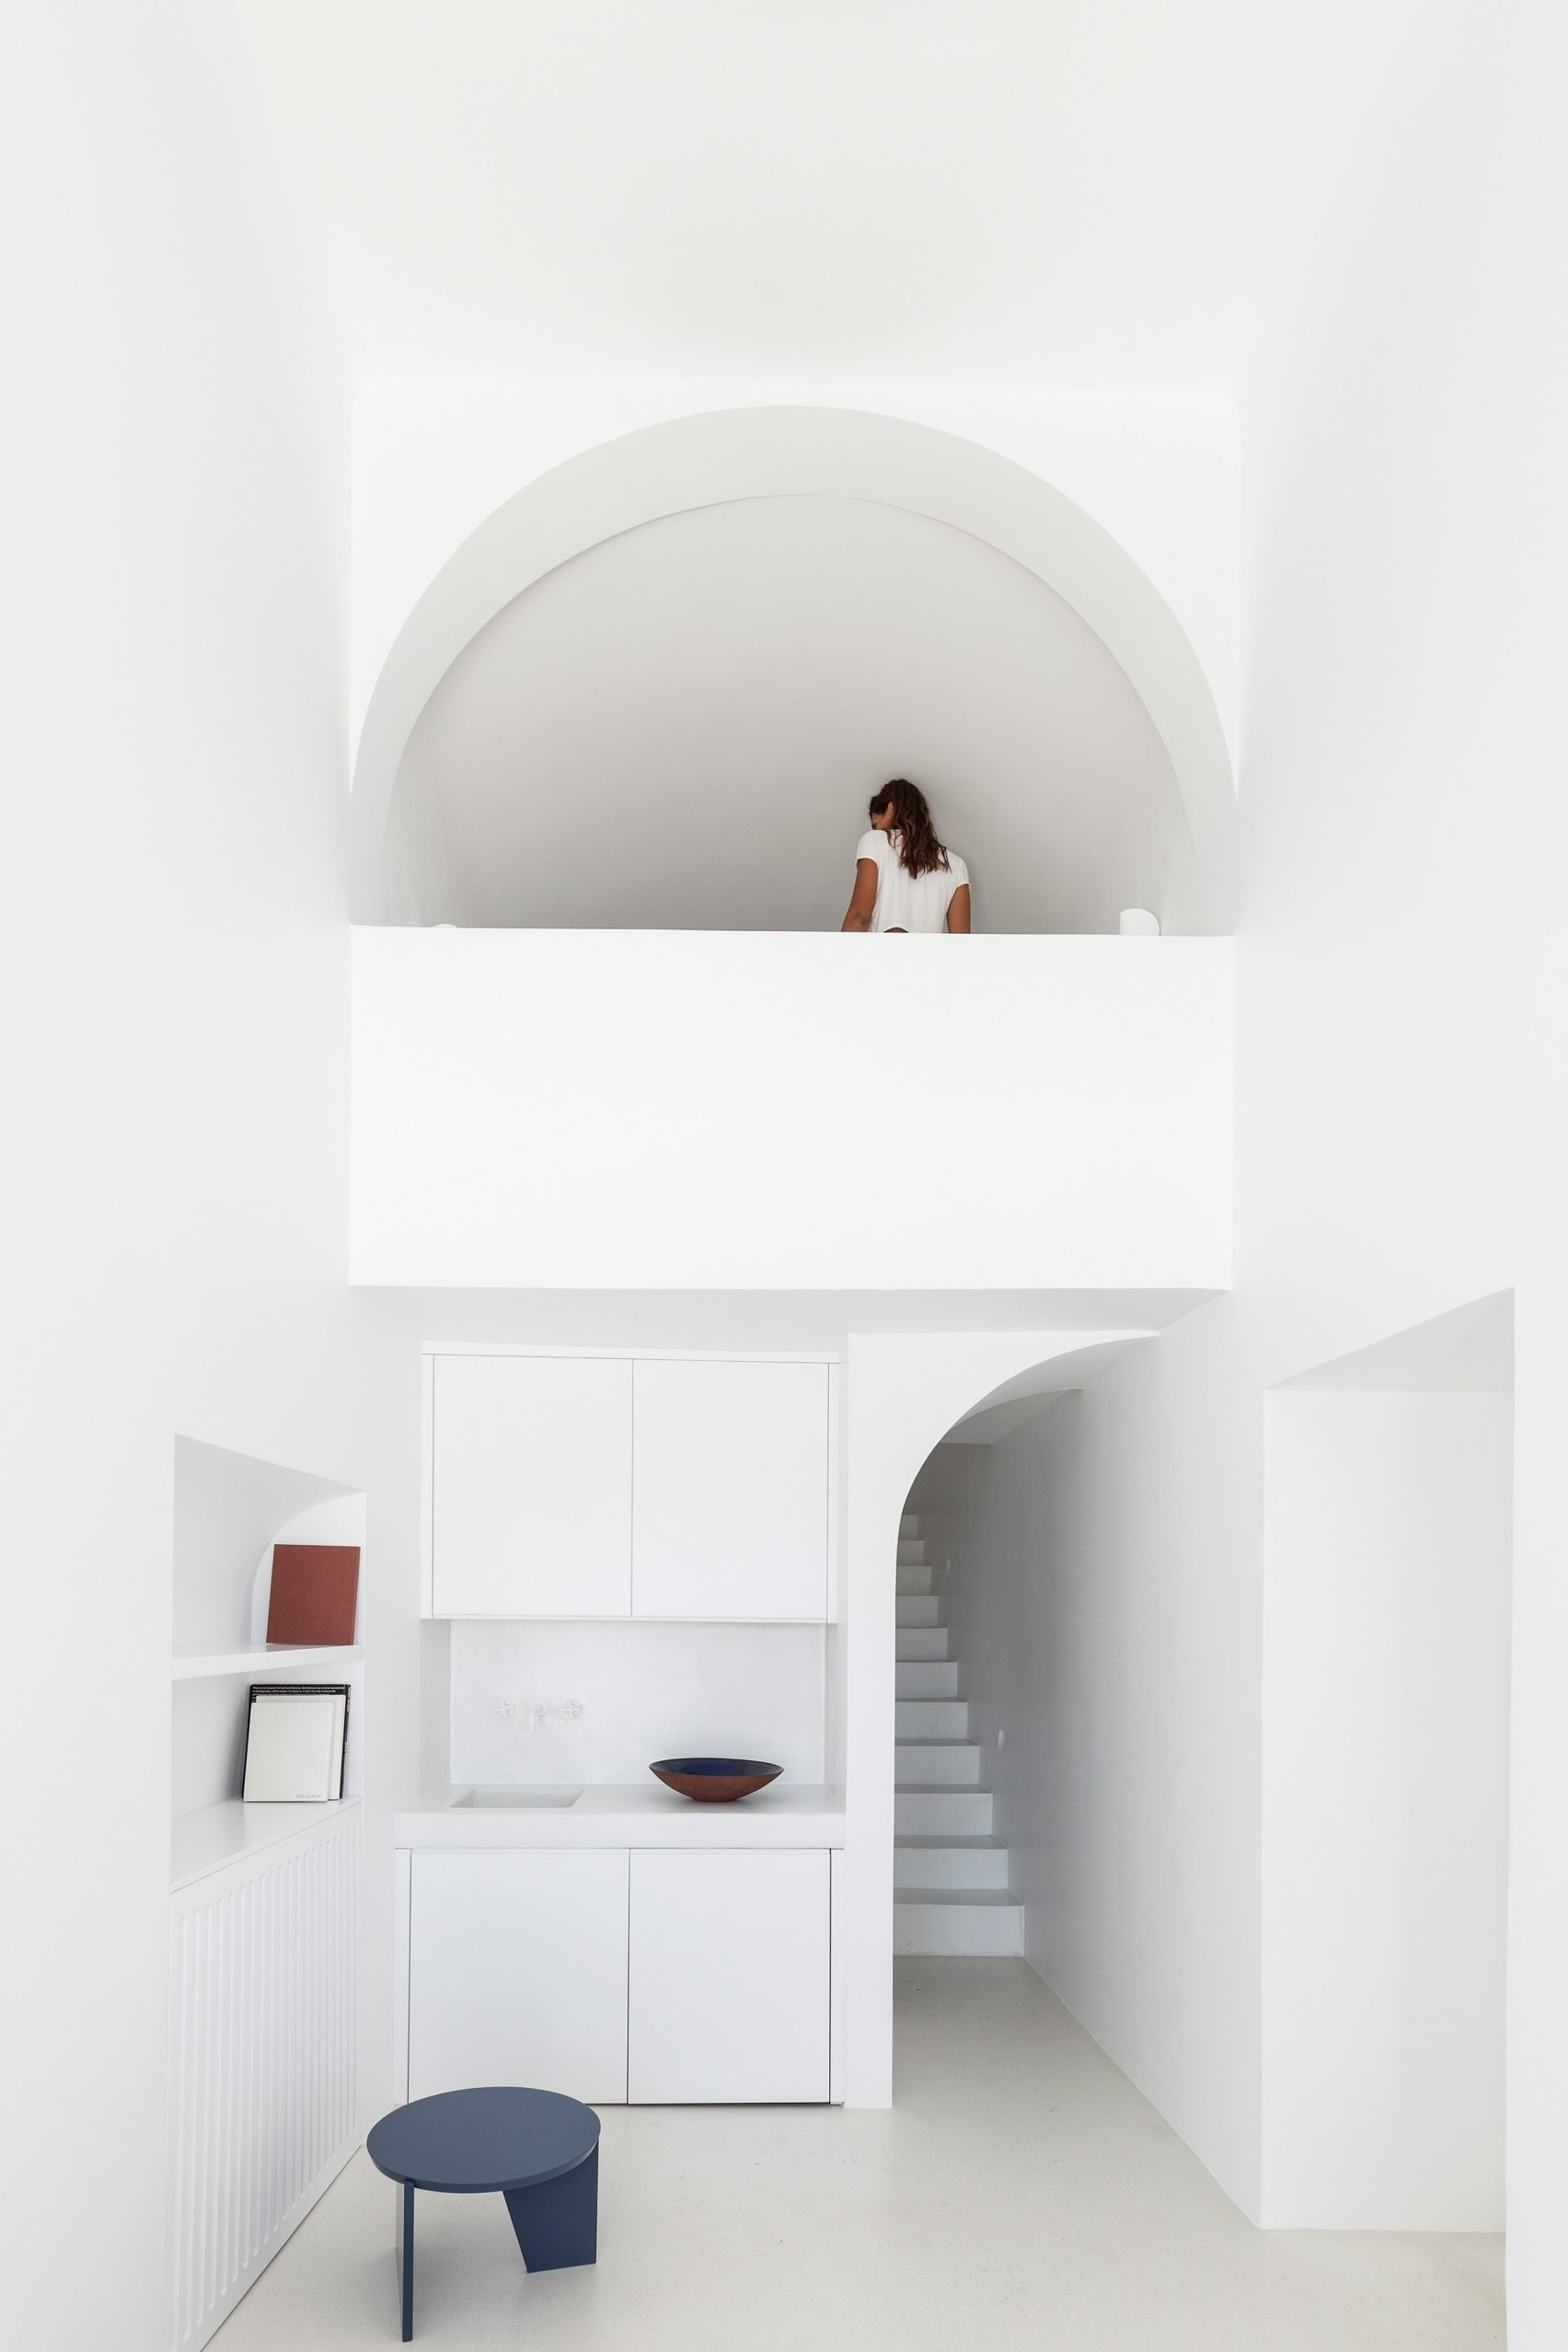 summer-residence-santorini-kapsimalis-architects-greece-architecture_dezeen_2364_col_19-1704x2556